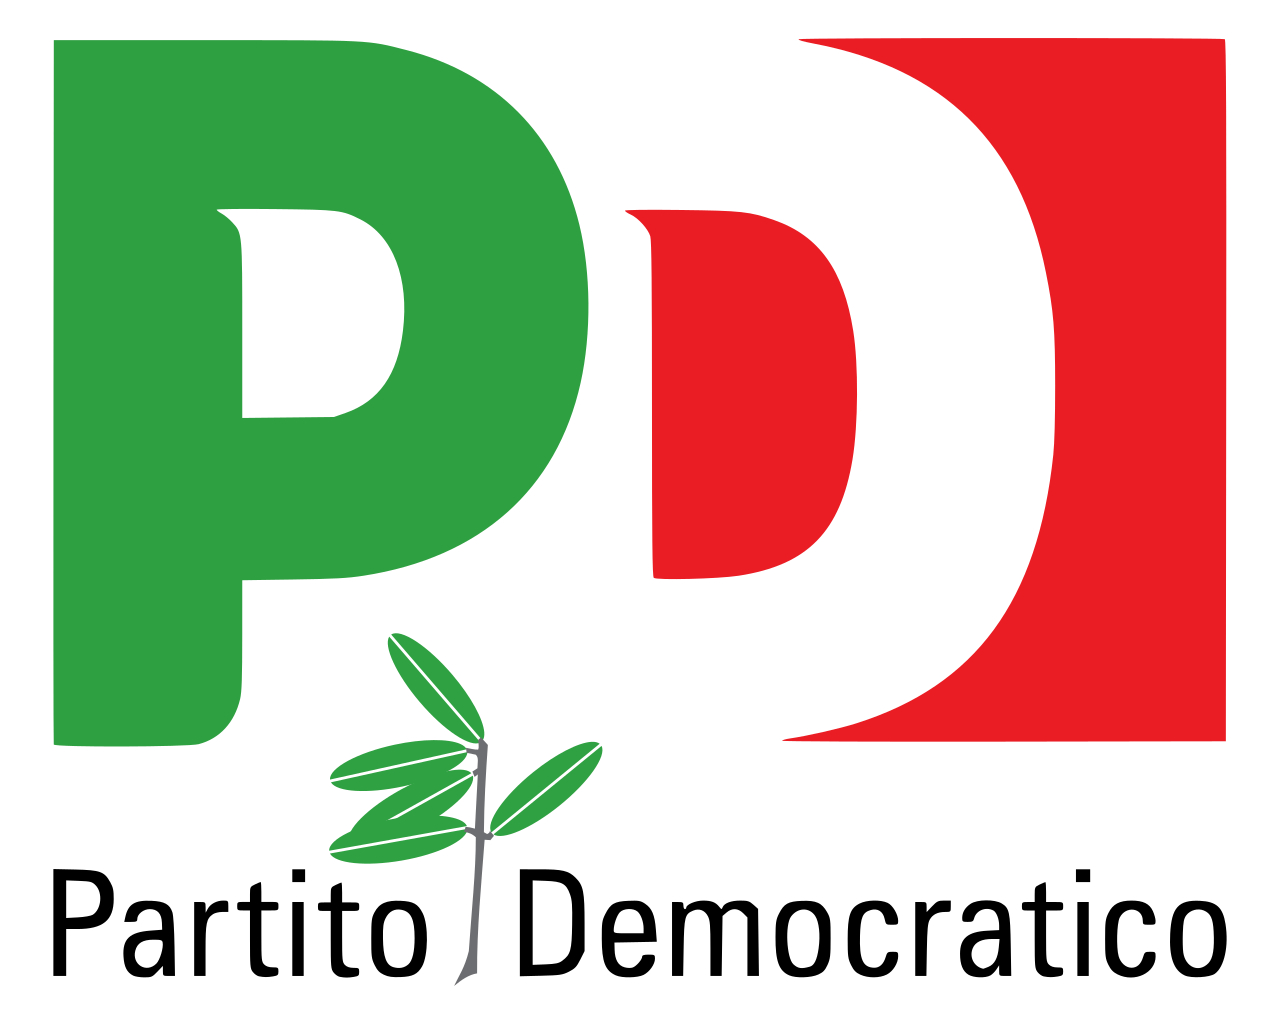 Pd logo png 4 » PNG Image.